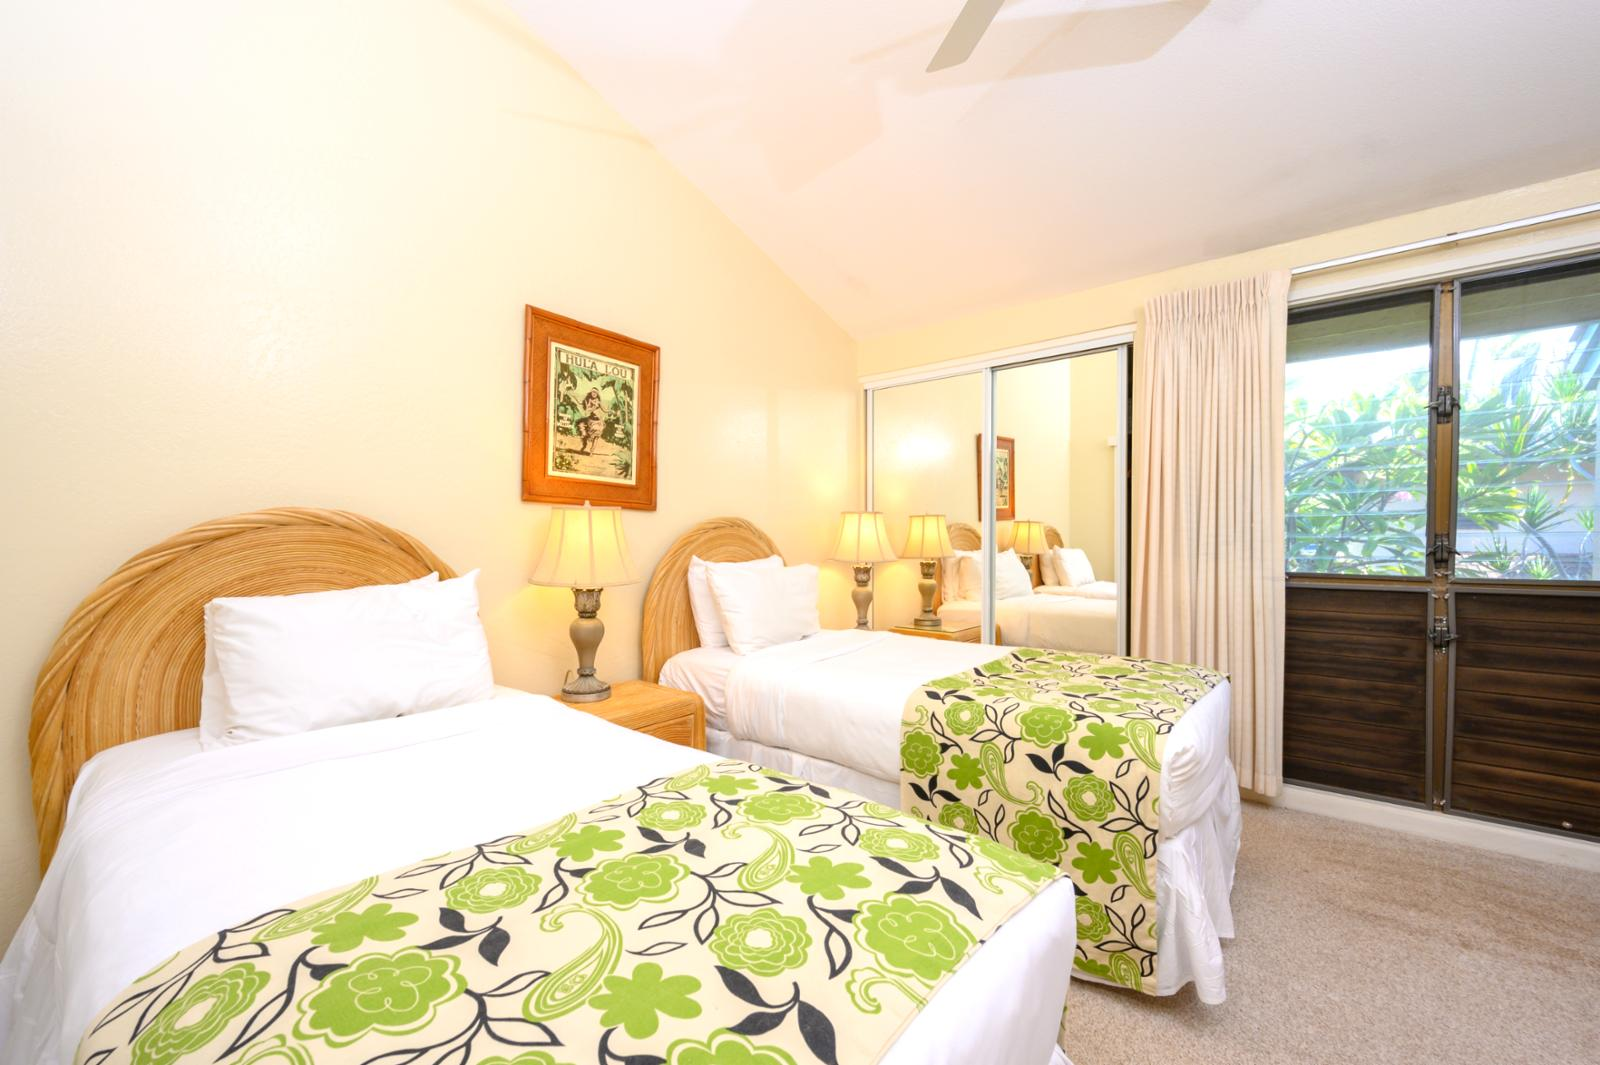 Resort views, comfortable twin bed configuration. Perfect for families!